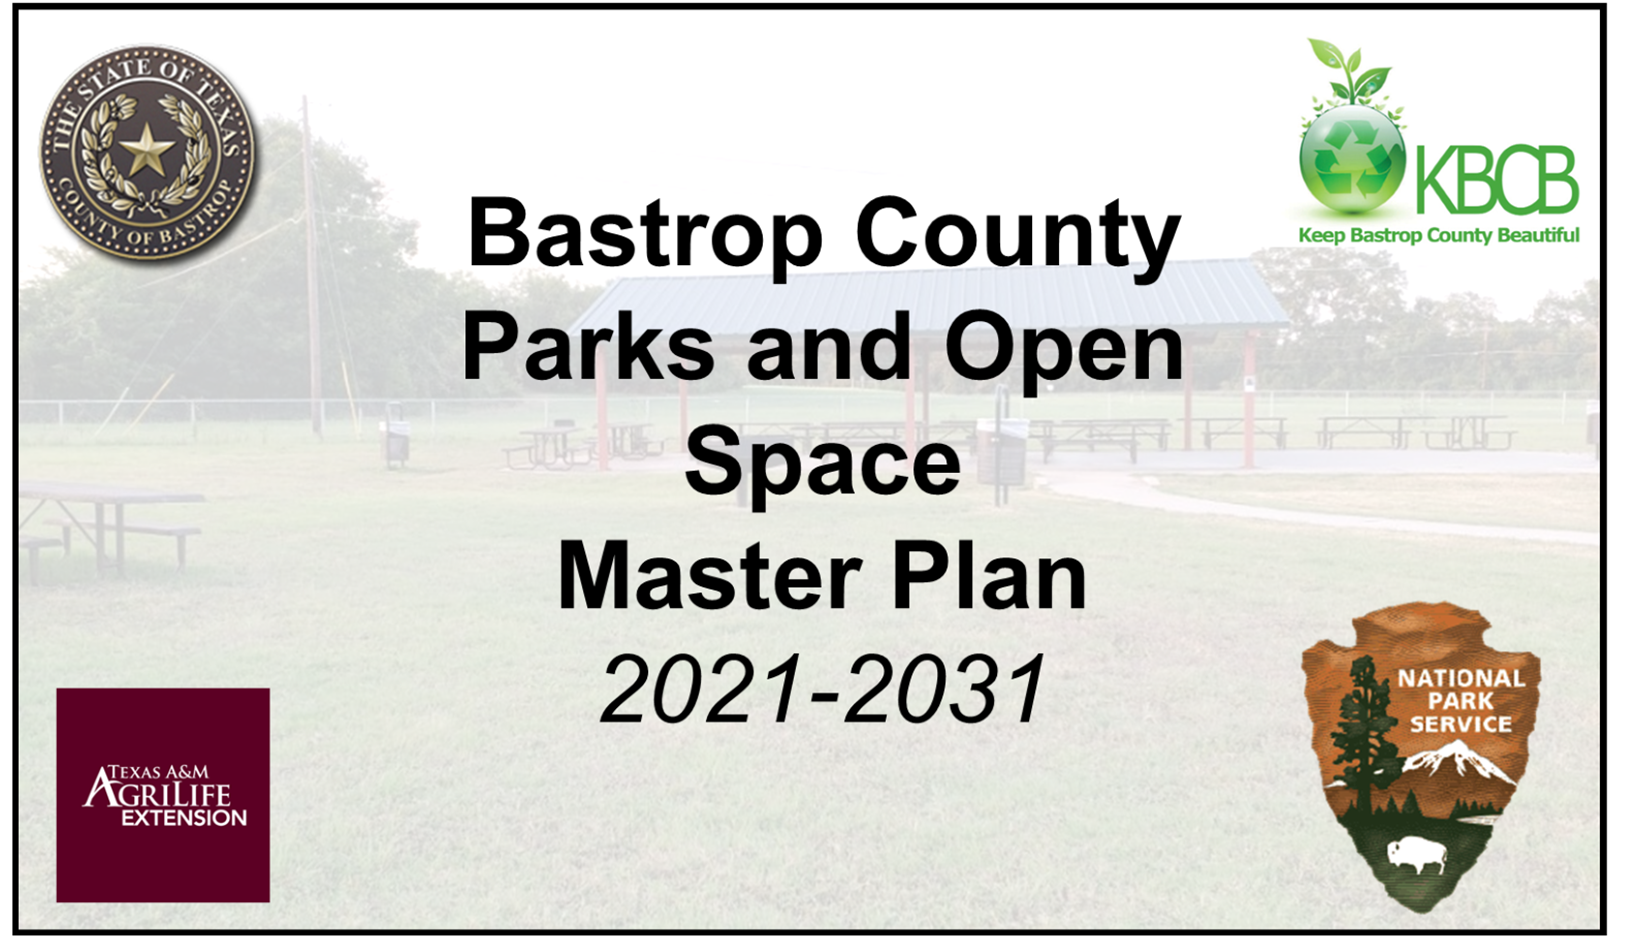 Bastrop County Parks and Open Space Master Plan